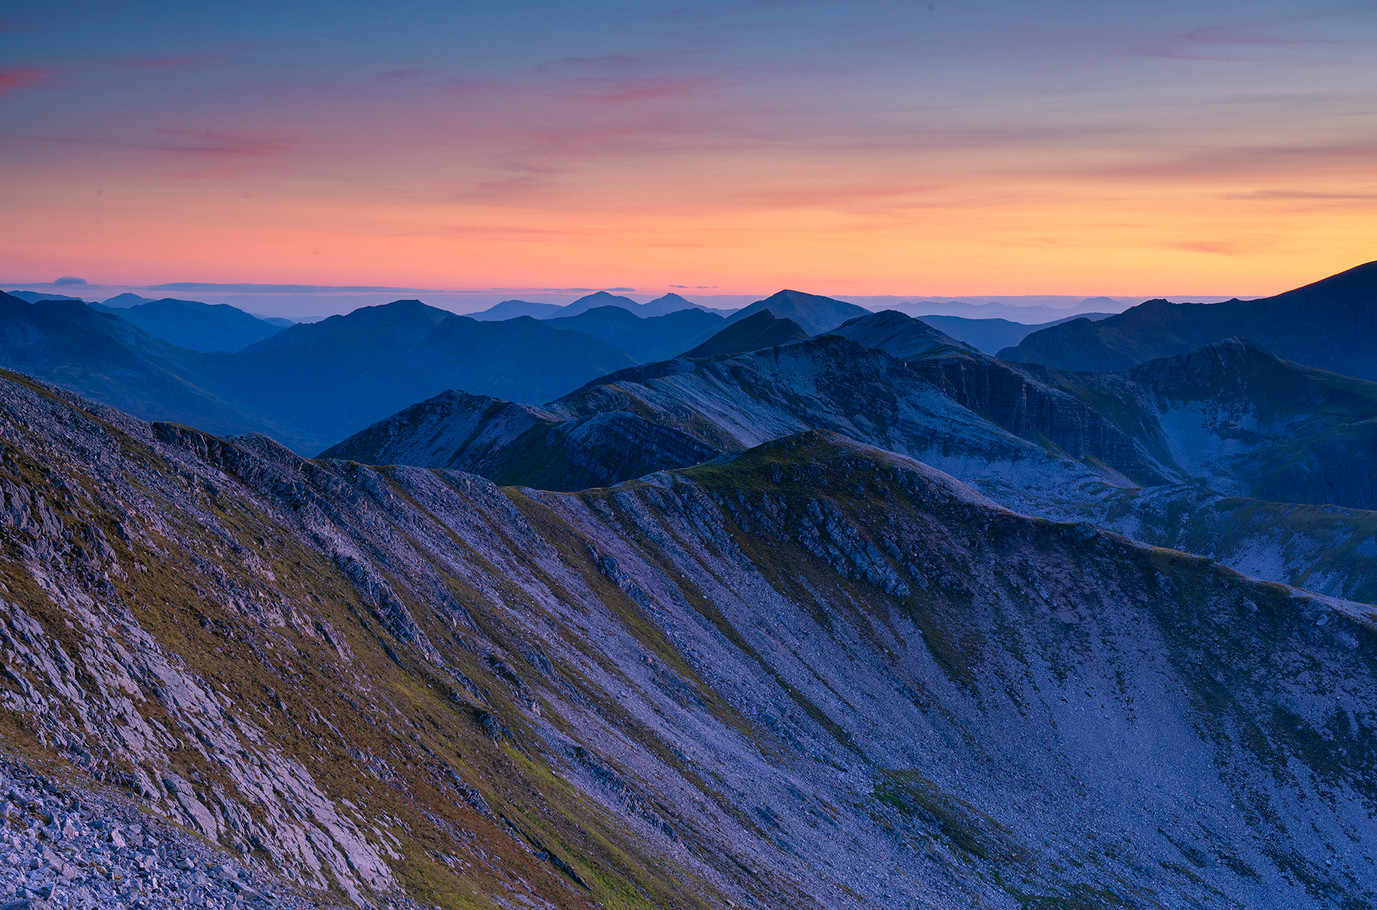 Last light over Lochaber summits